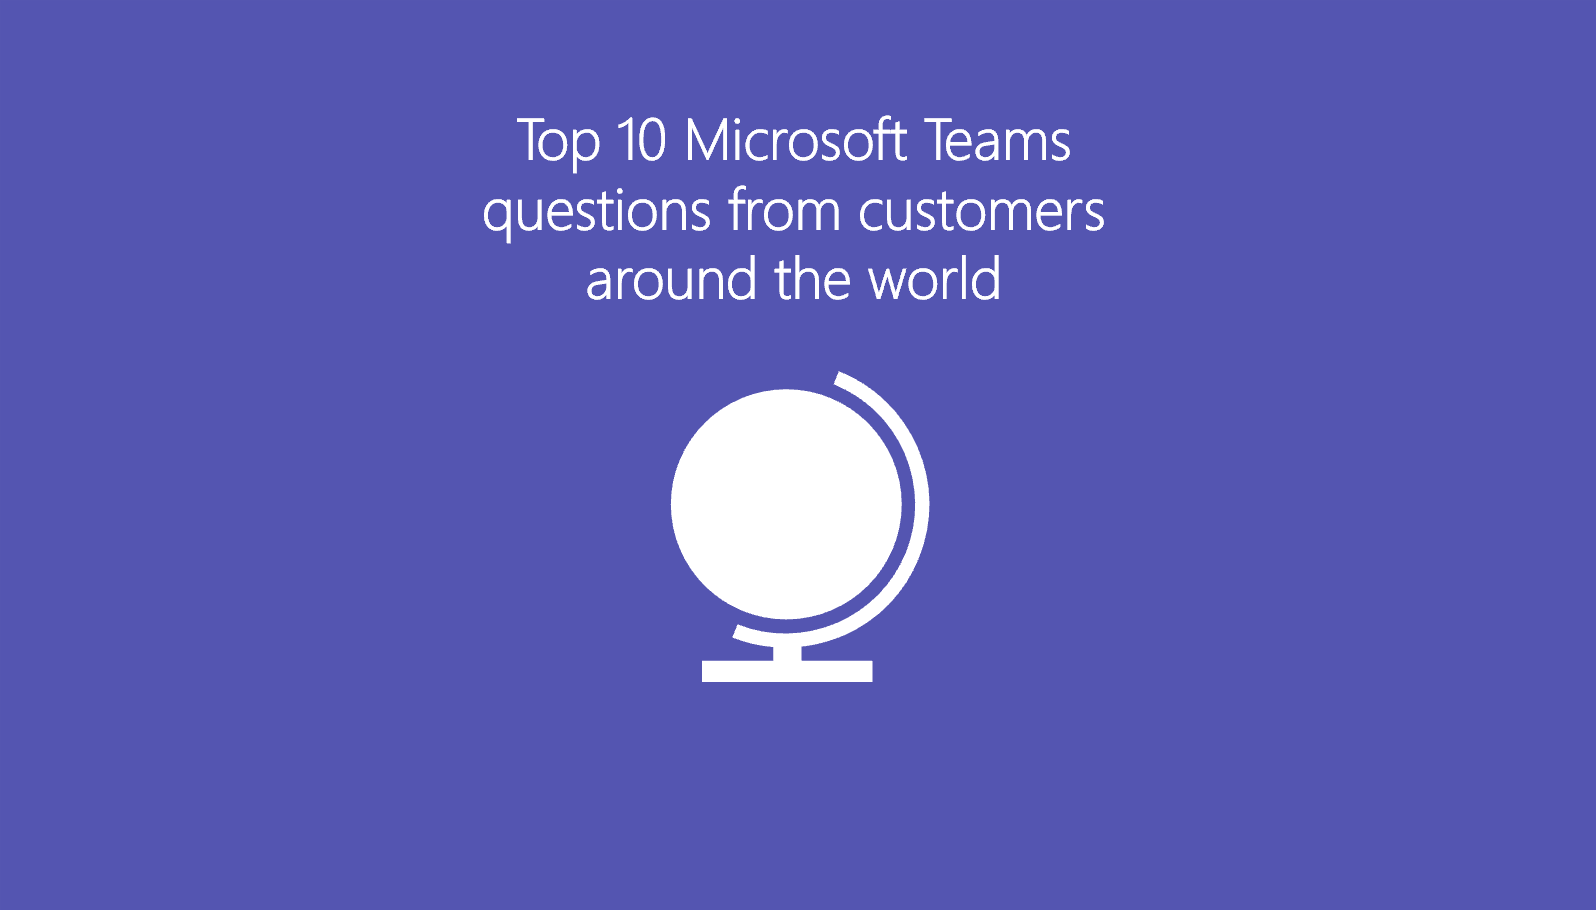 Top 10 Microsoft Teams questions from customers around the world